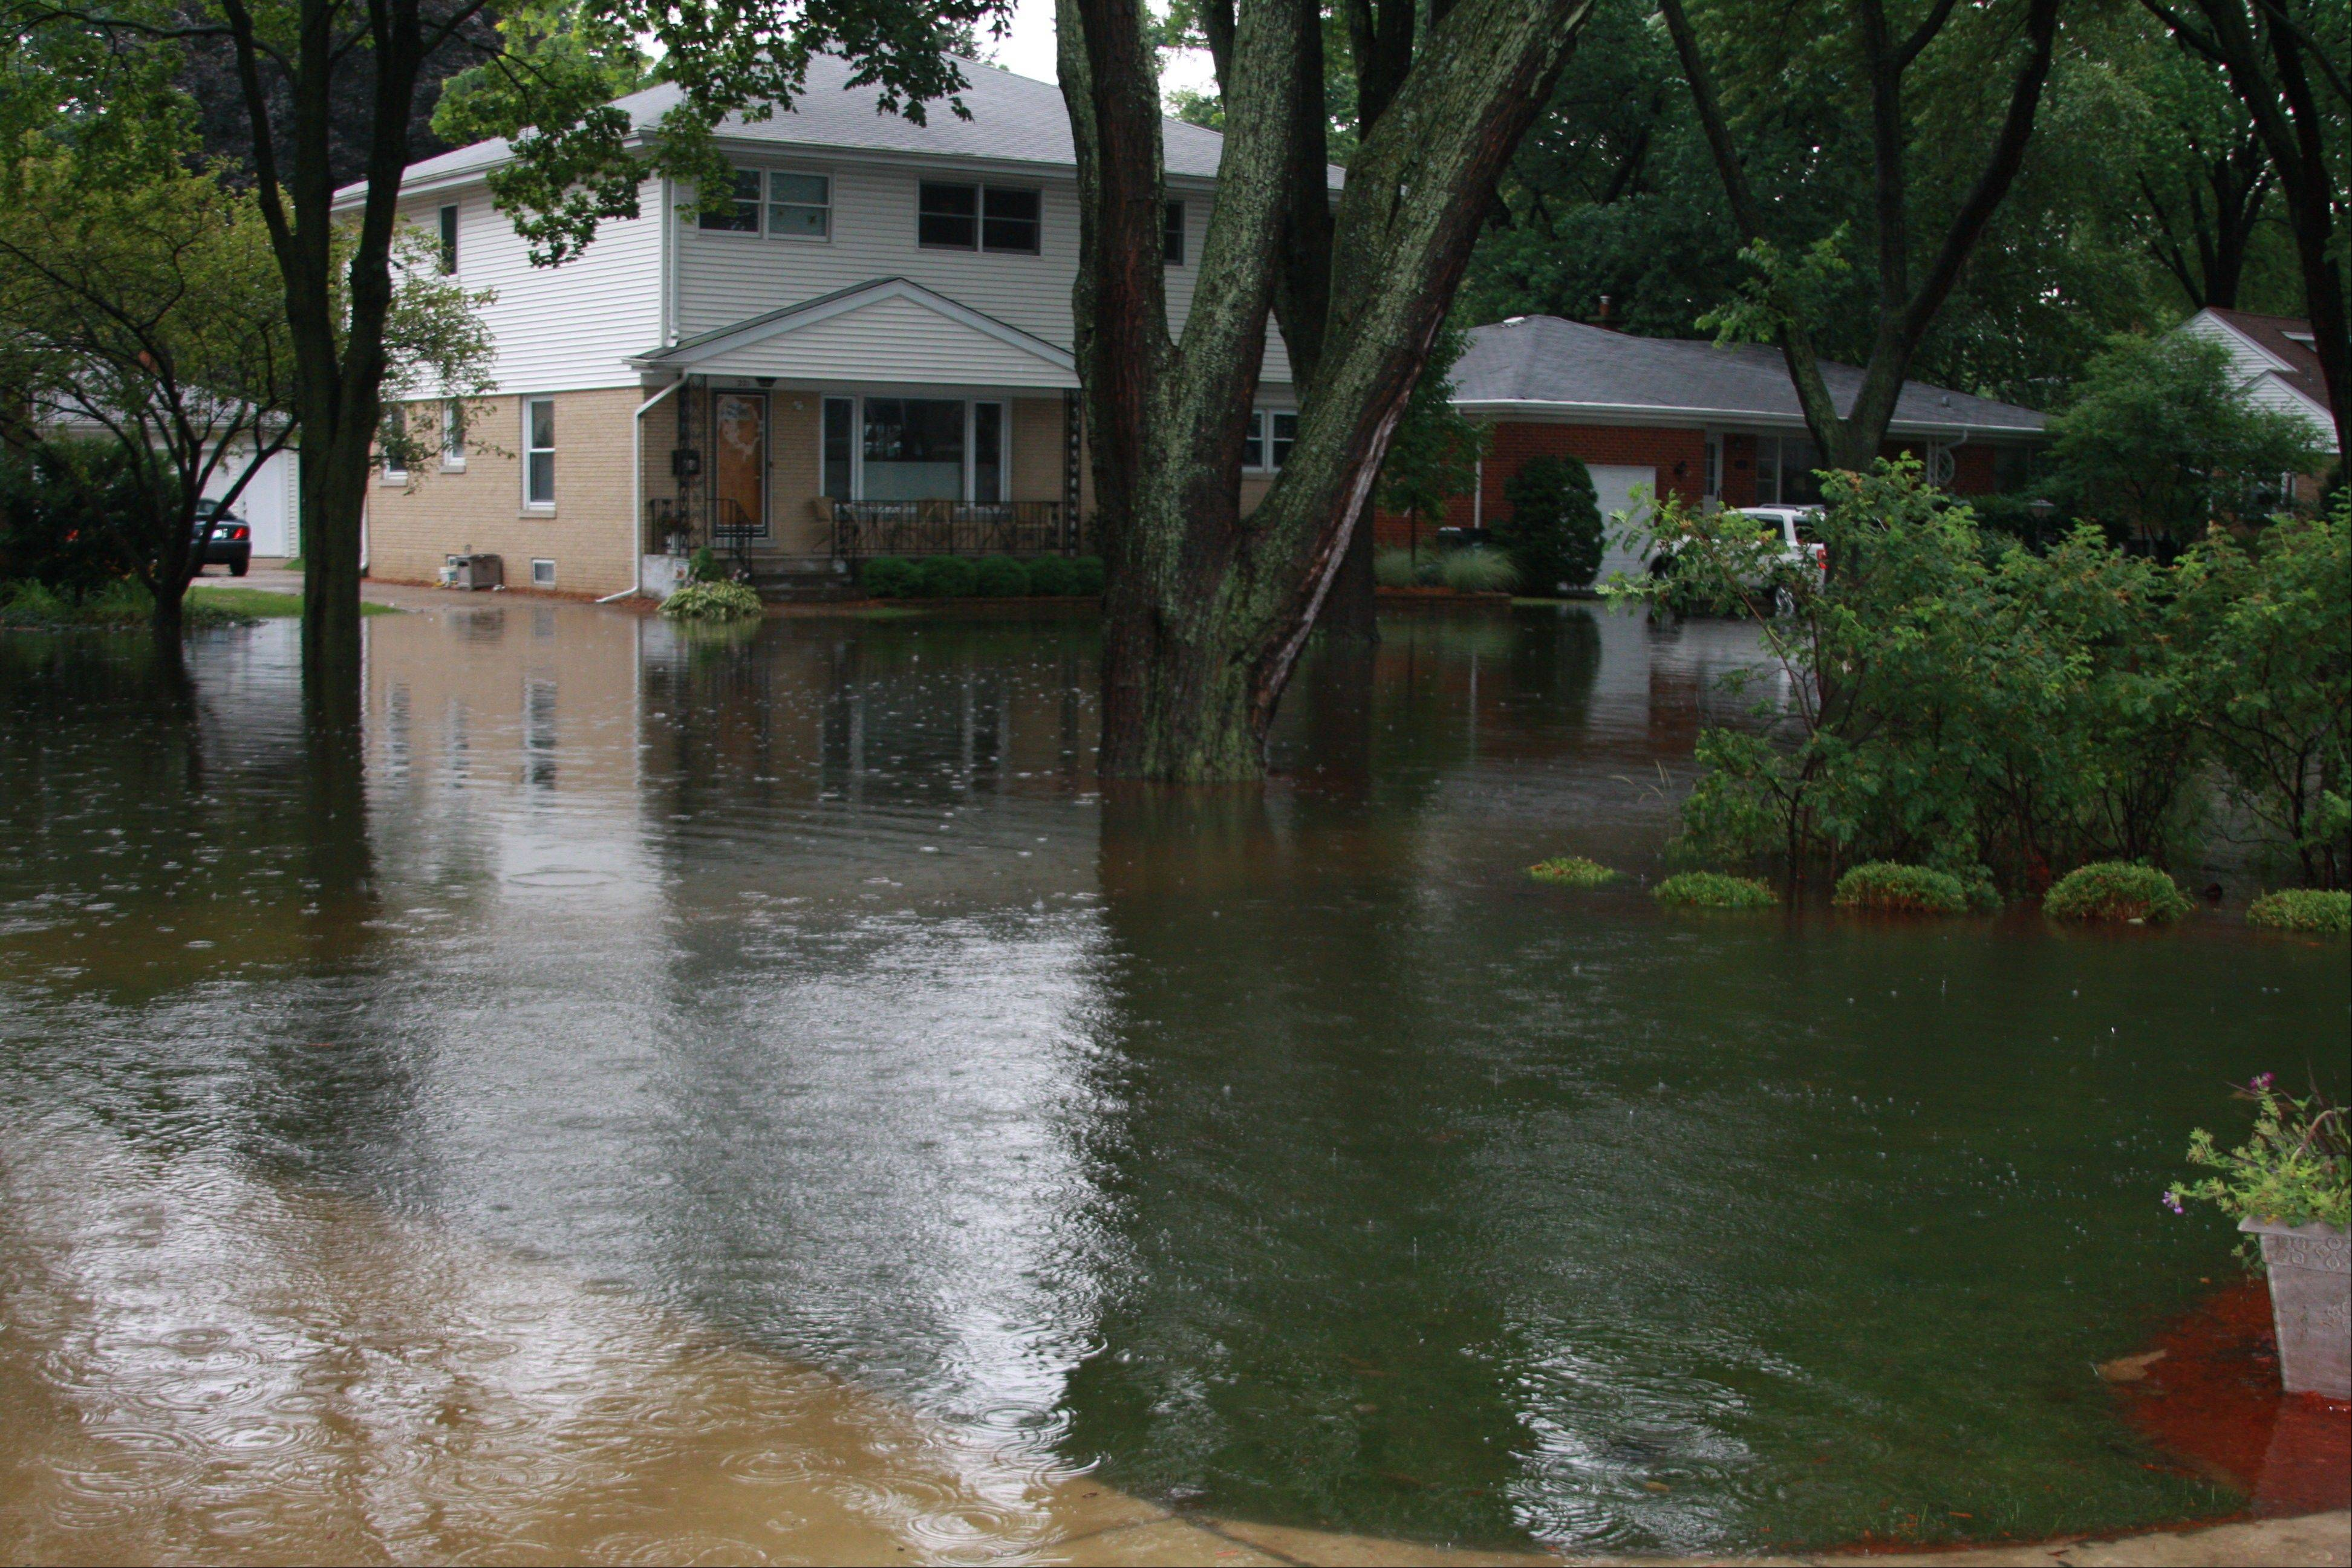 Arlington hts. neighborhoods beg for flood help